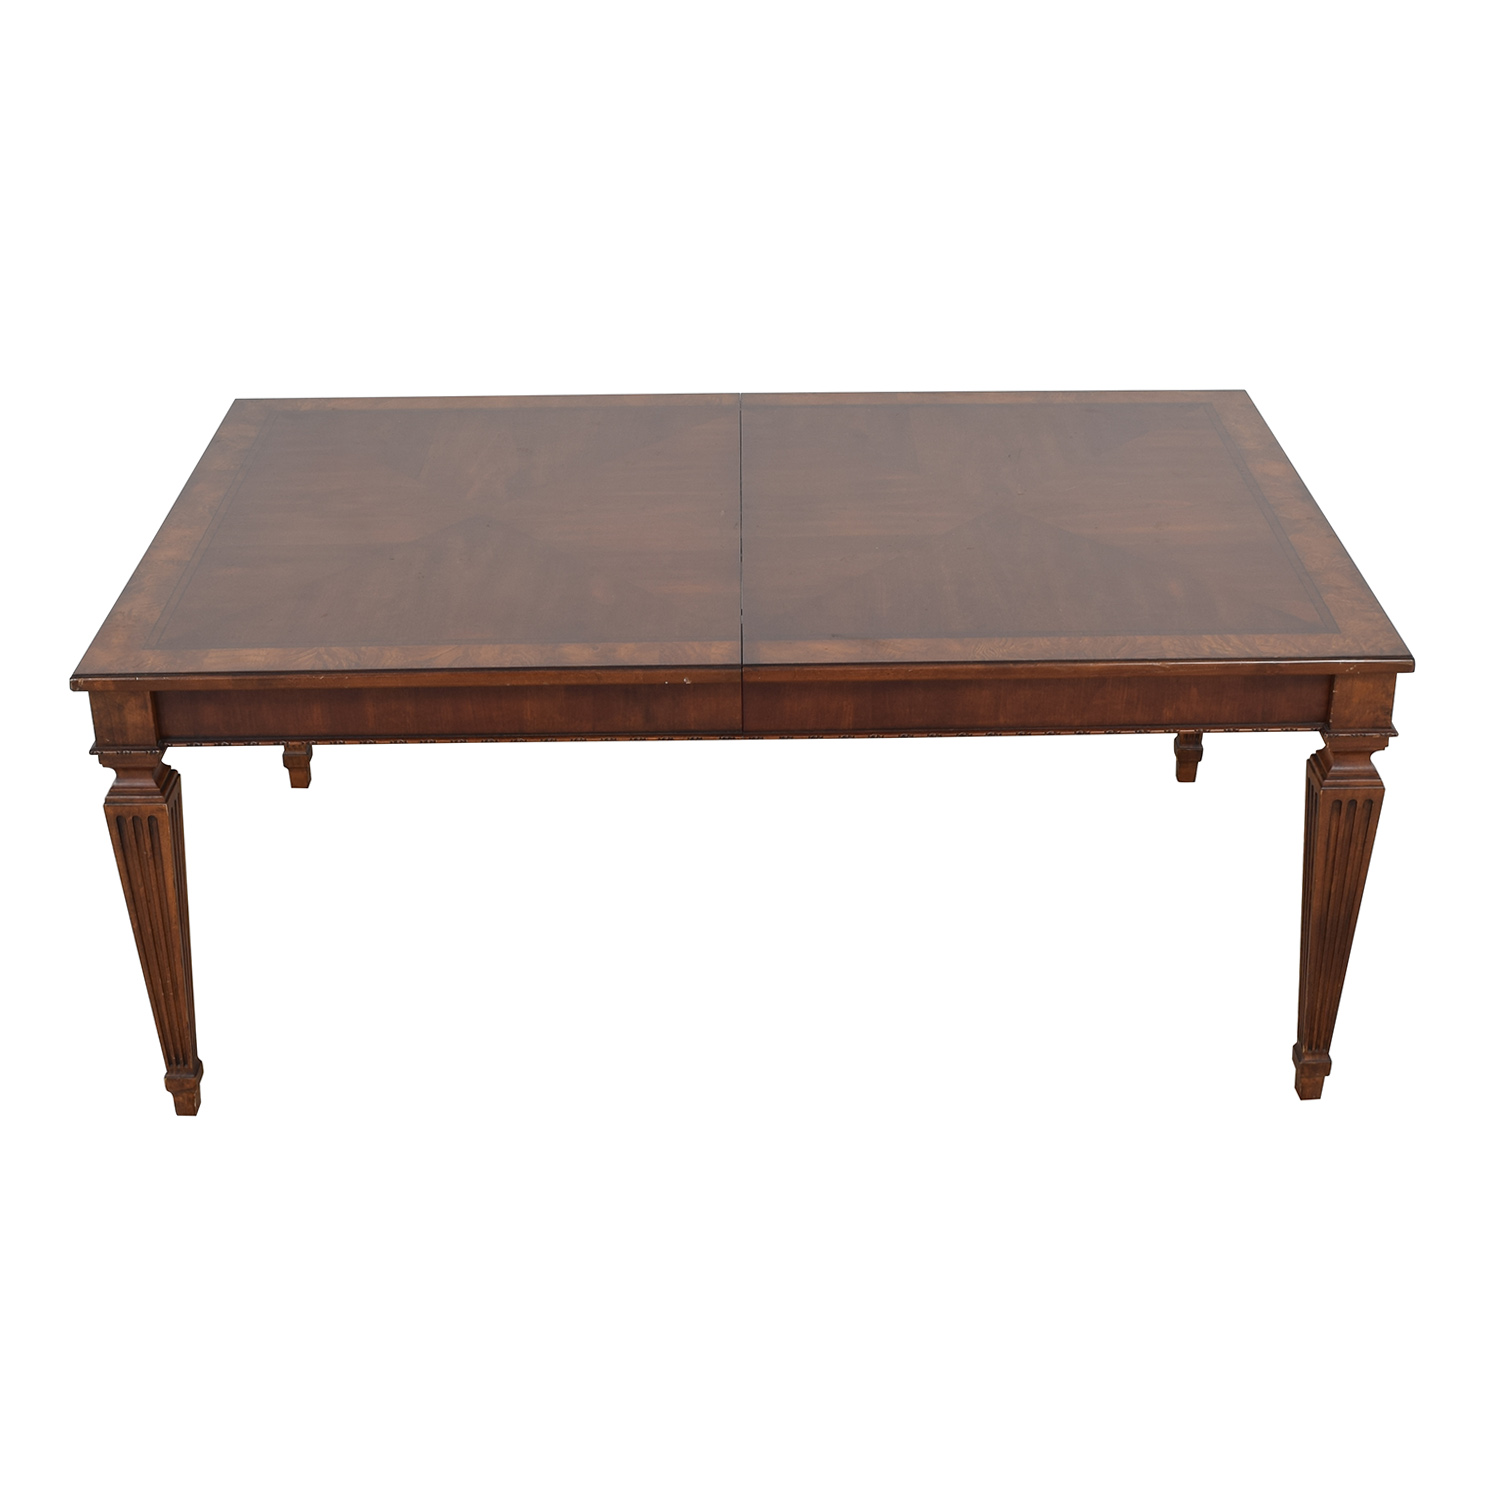 Ethan Allen Ethan Allen Goodwin Dining Table used